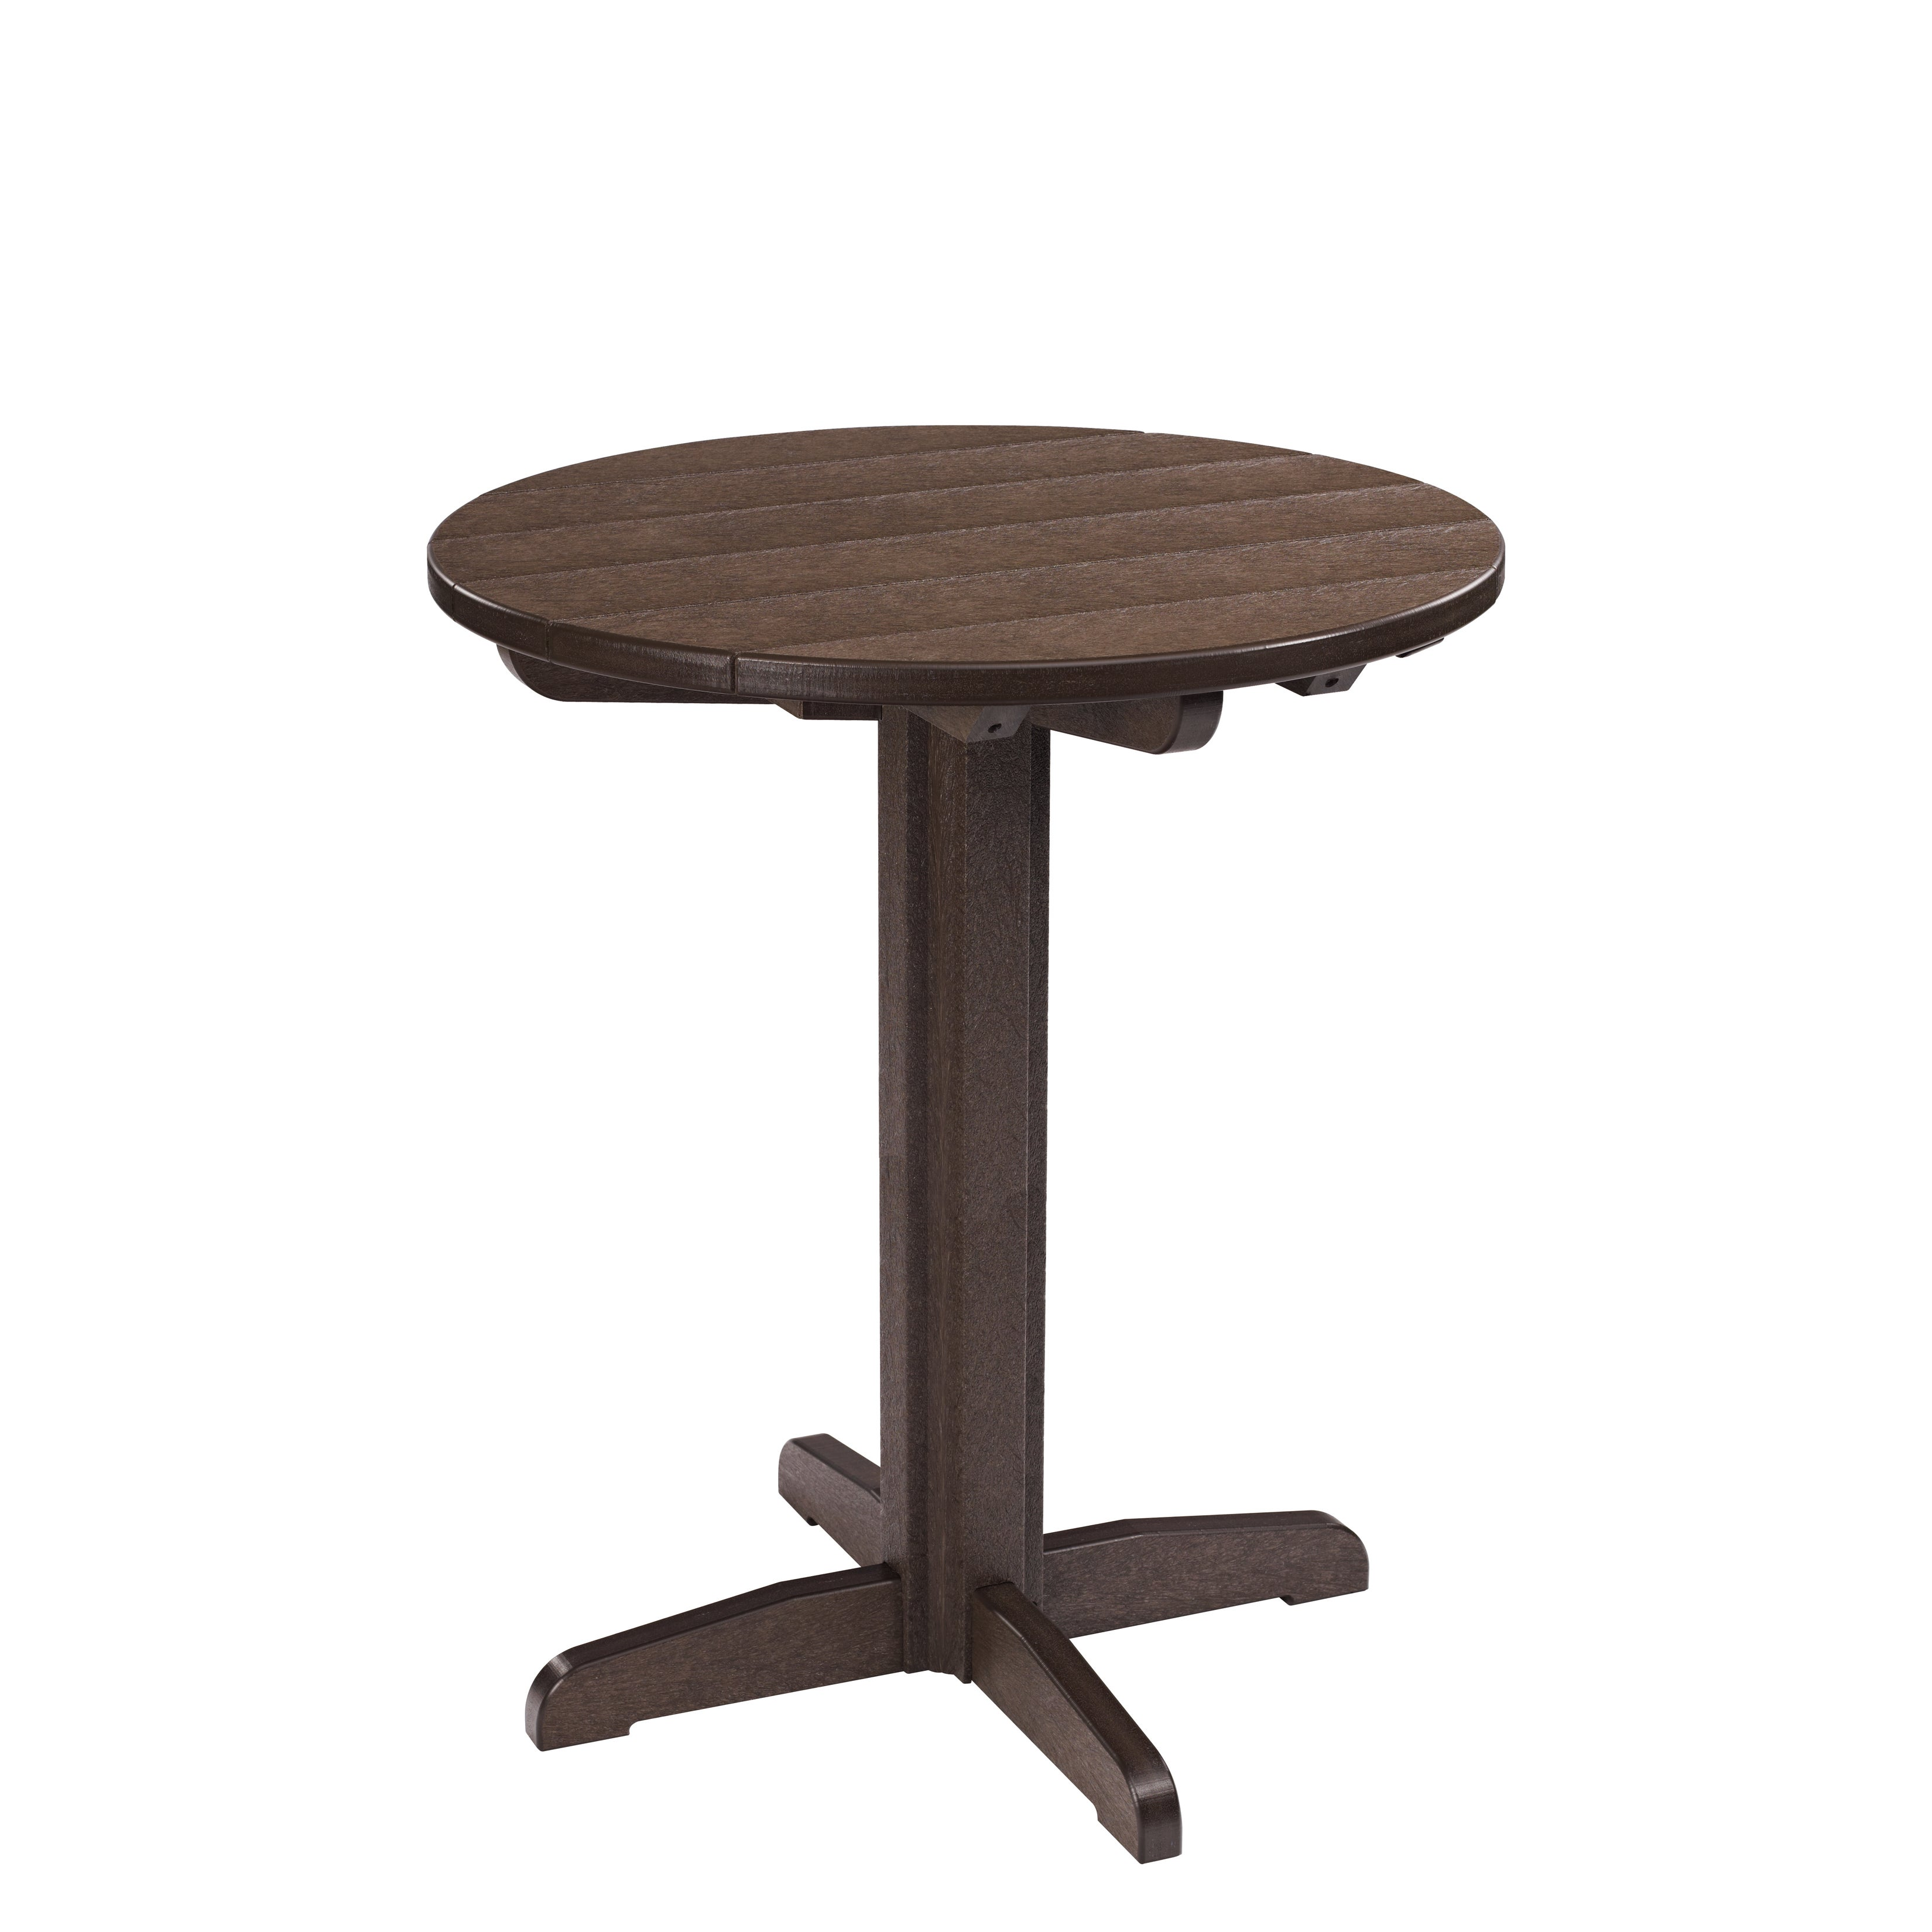 Generations Chocolate 32 Inch Round Pub Height Pedestal Table